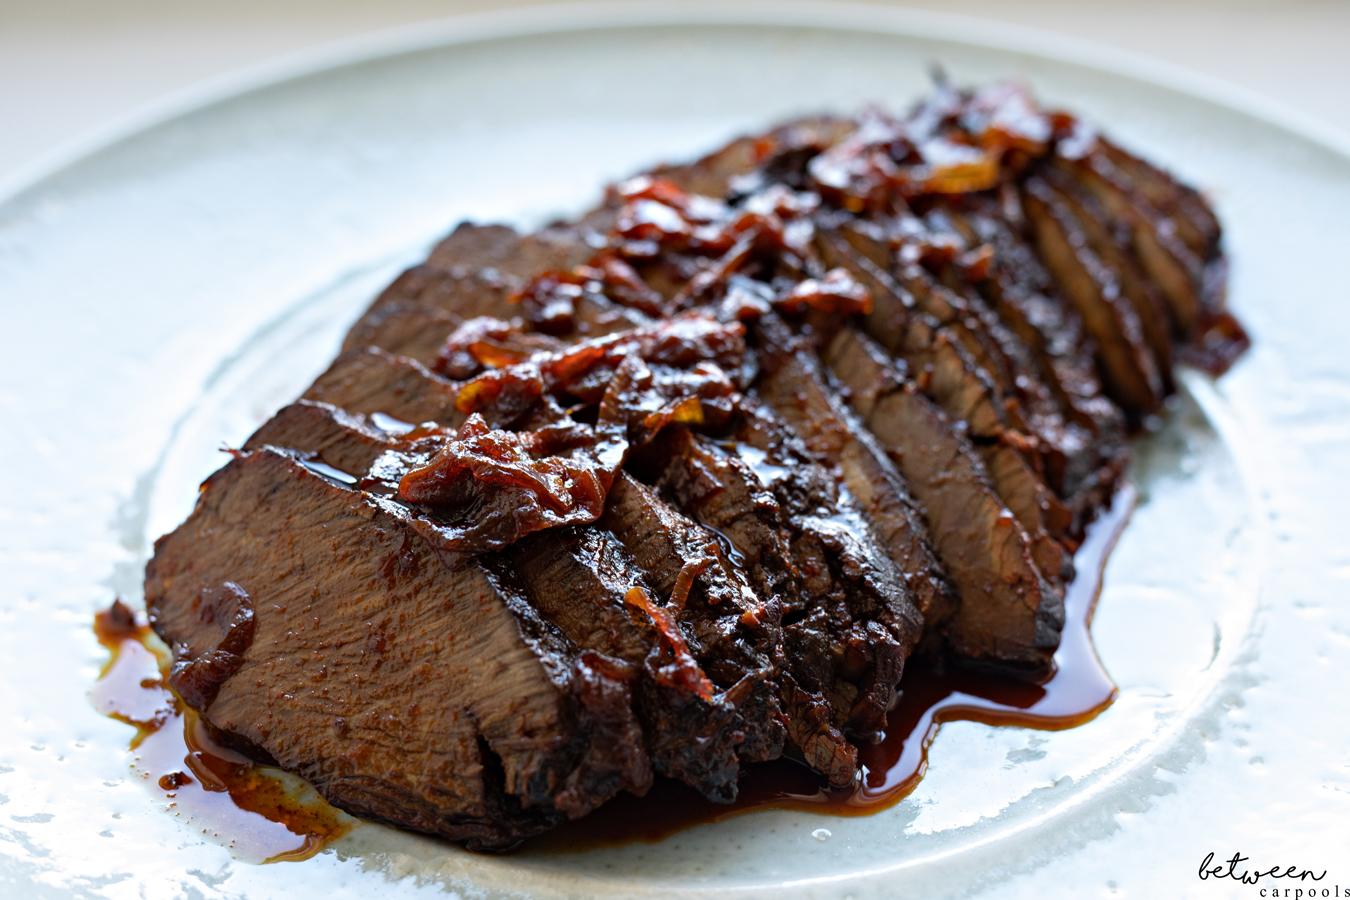 Caramelized French Roast: The Only Roast You'll Ever Need on Pesach People say that this is their favorite roast ever. But we save it and savor it on Pesach.